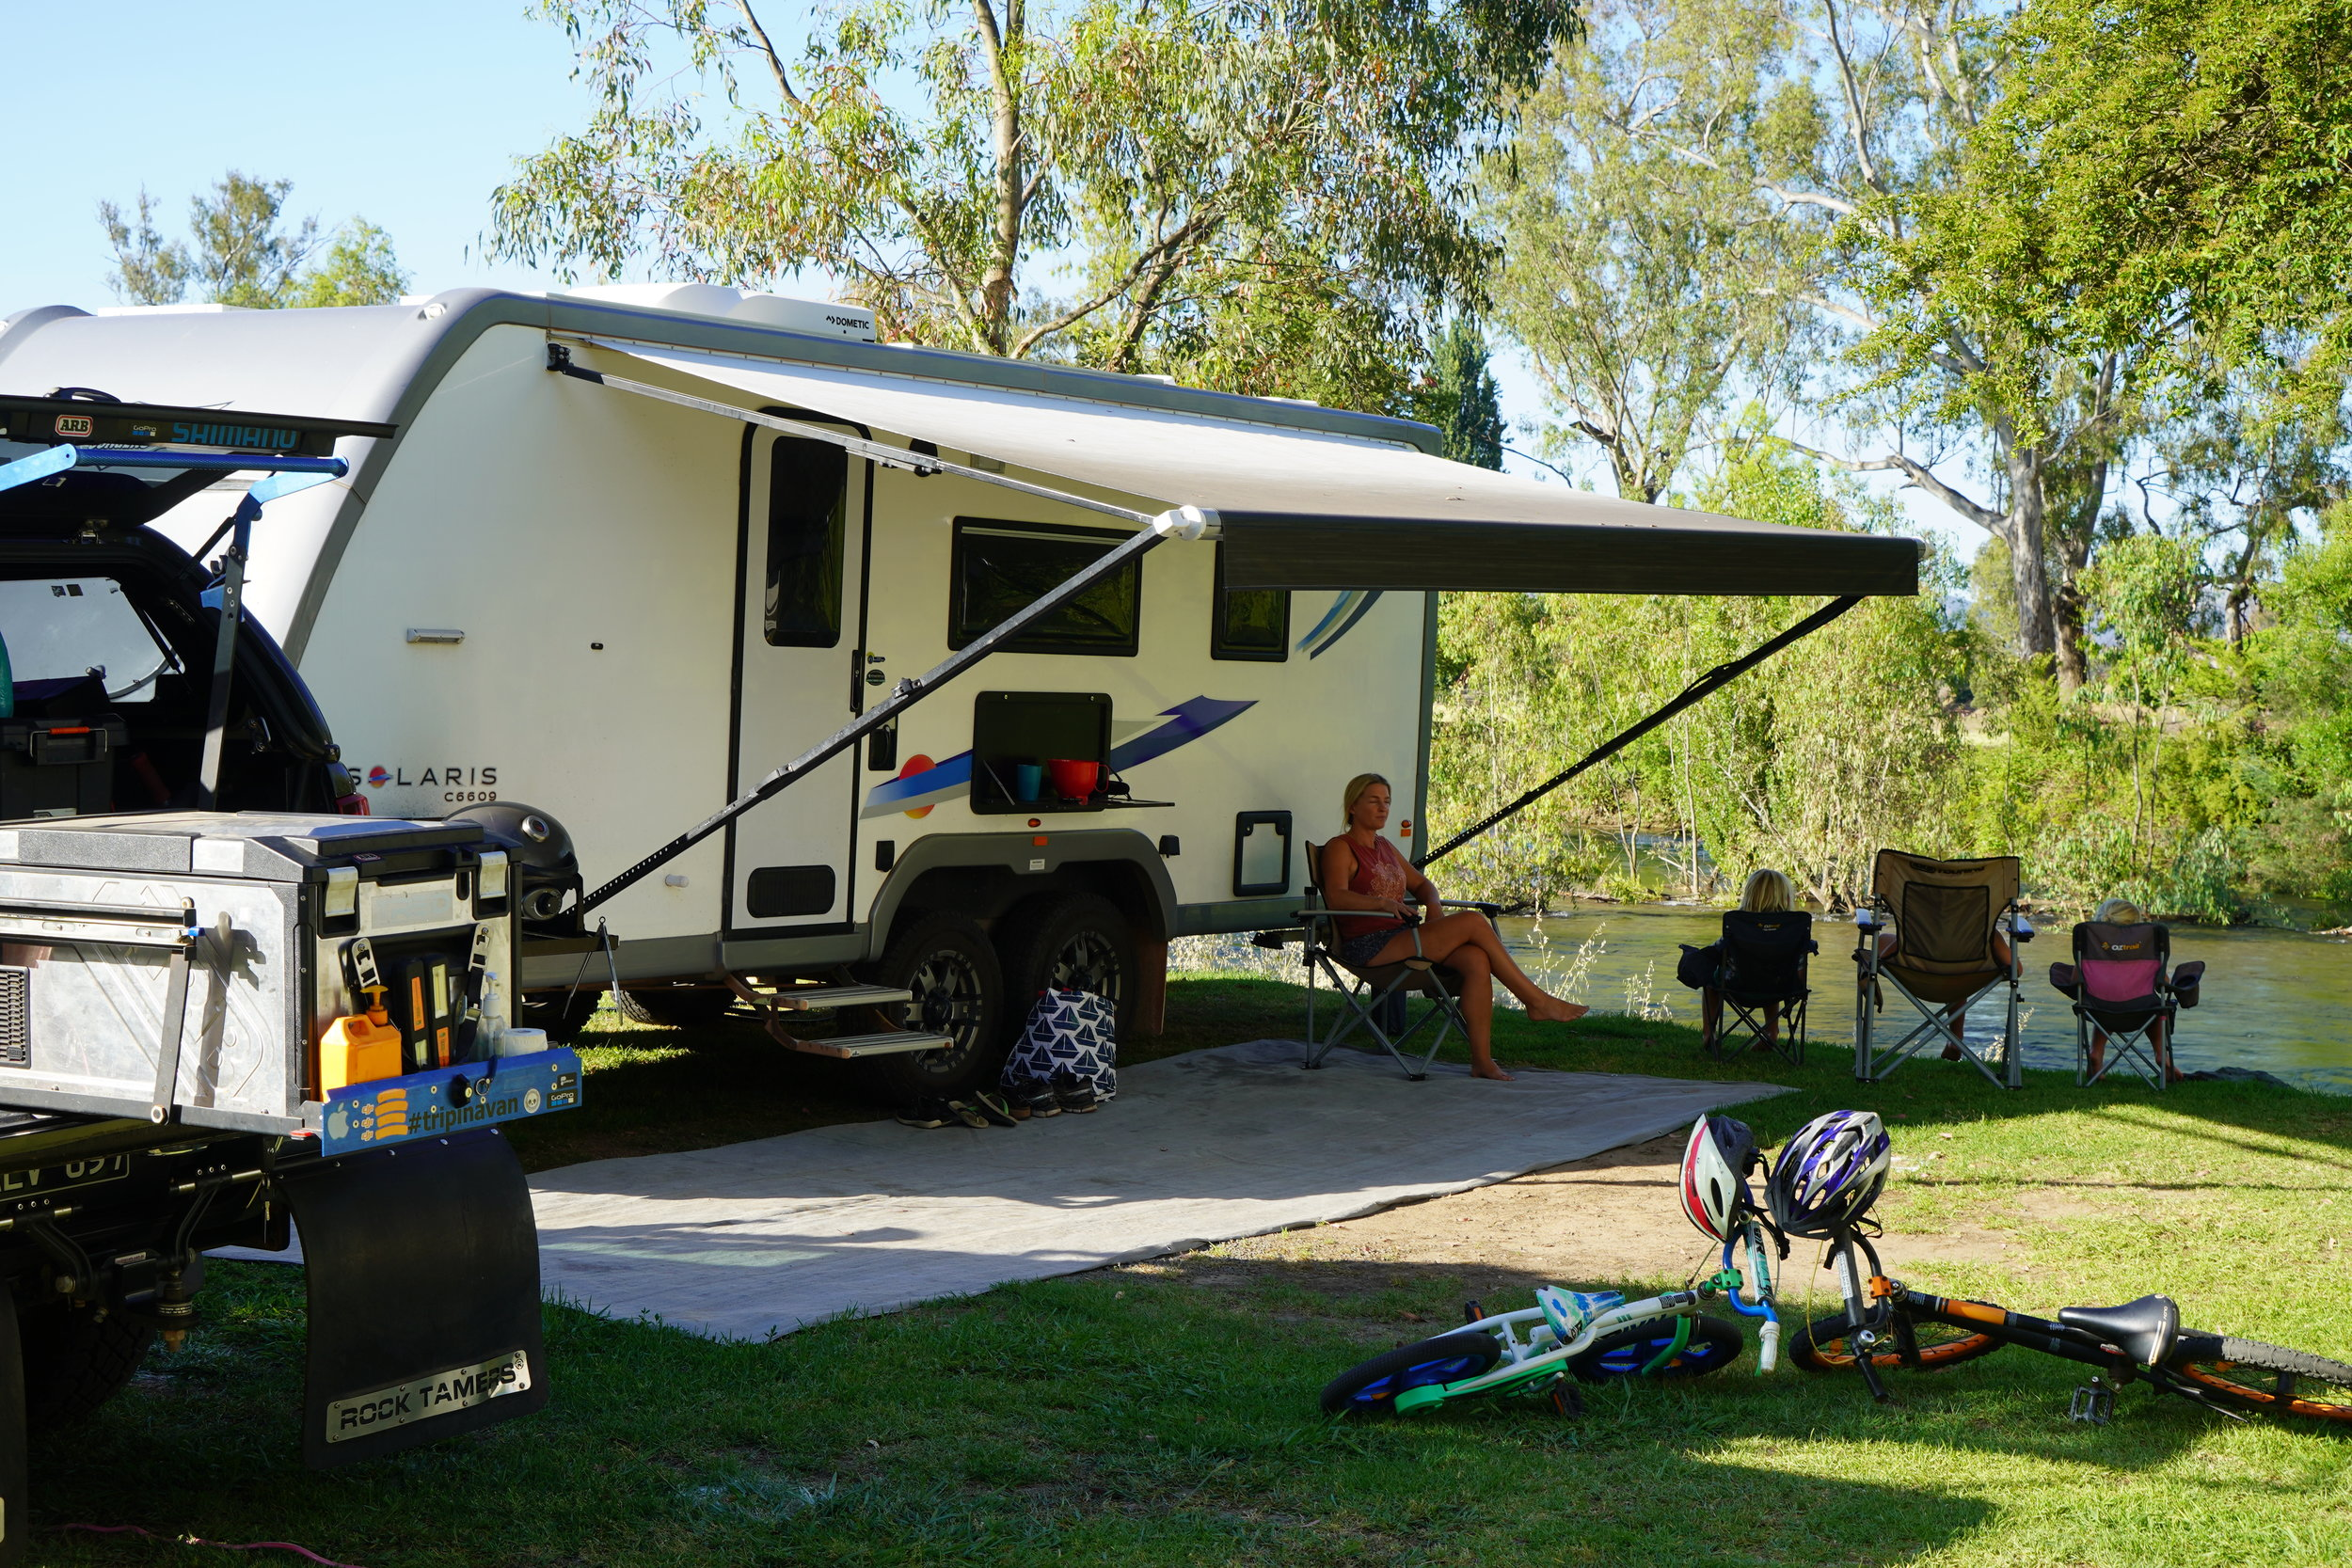 Chilling out riverside at the van….